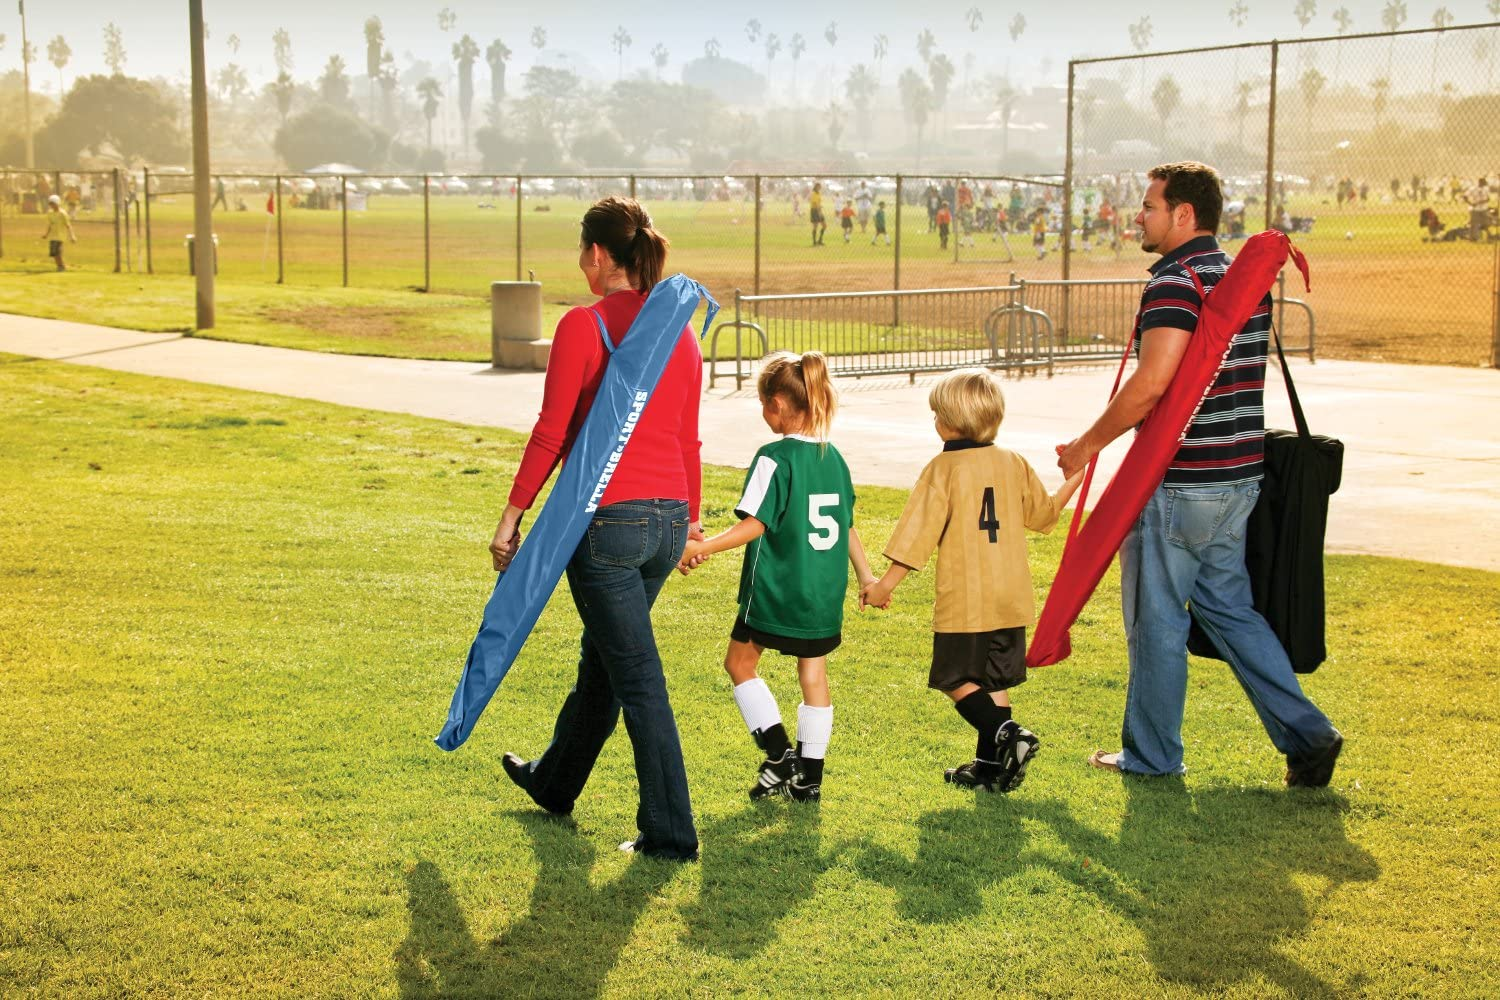 Family walking across grass at soccer game. Man and woman each carrying carrying a Sport-Brella XL over their shoulder